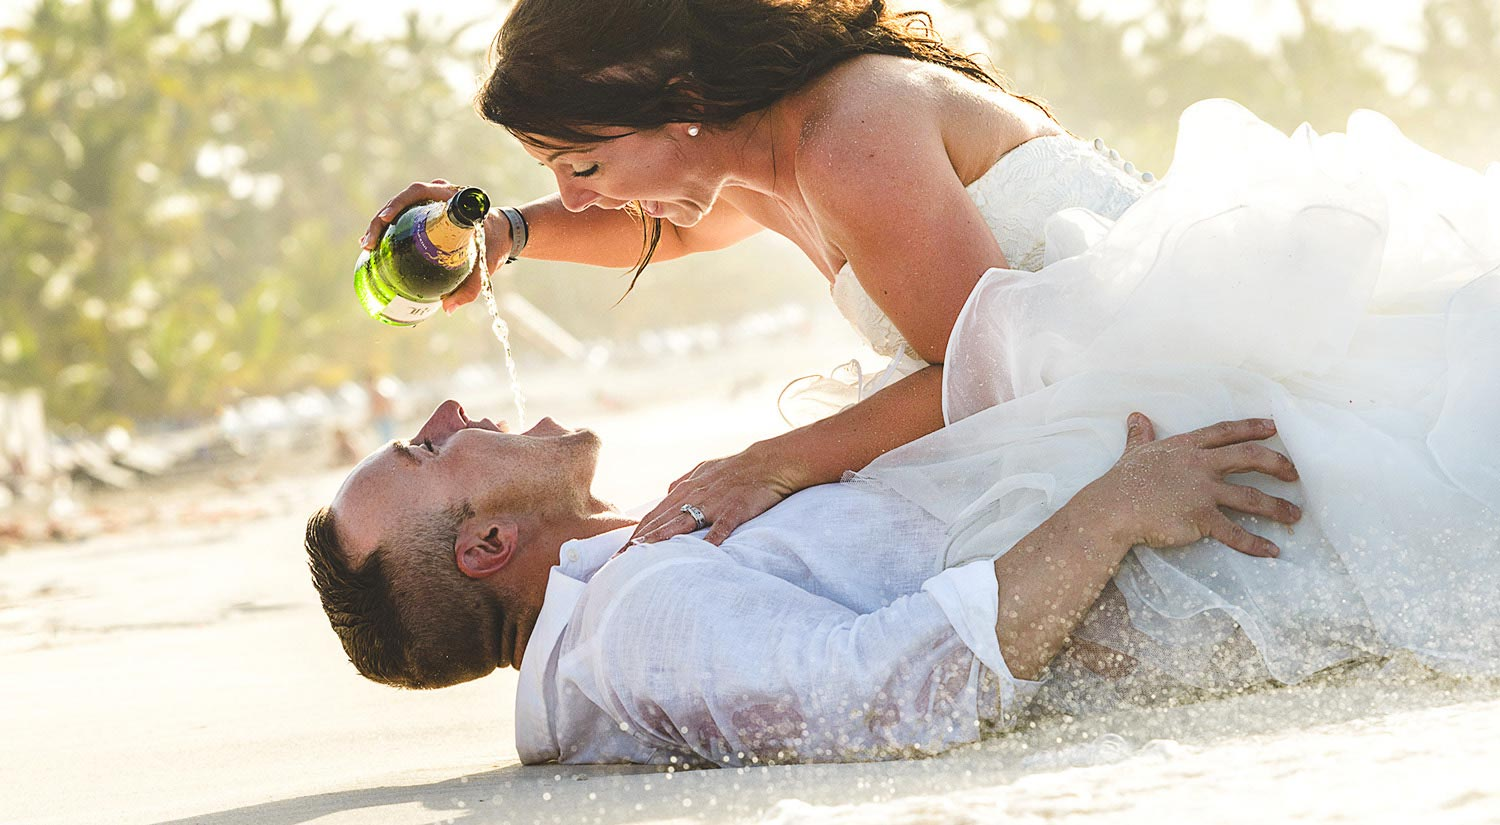 Caribbean Weddings At Majestic Colonial Punta Cana Vaughn Barry Photography Muskoka Wedding